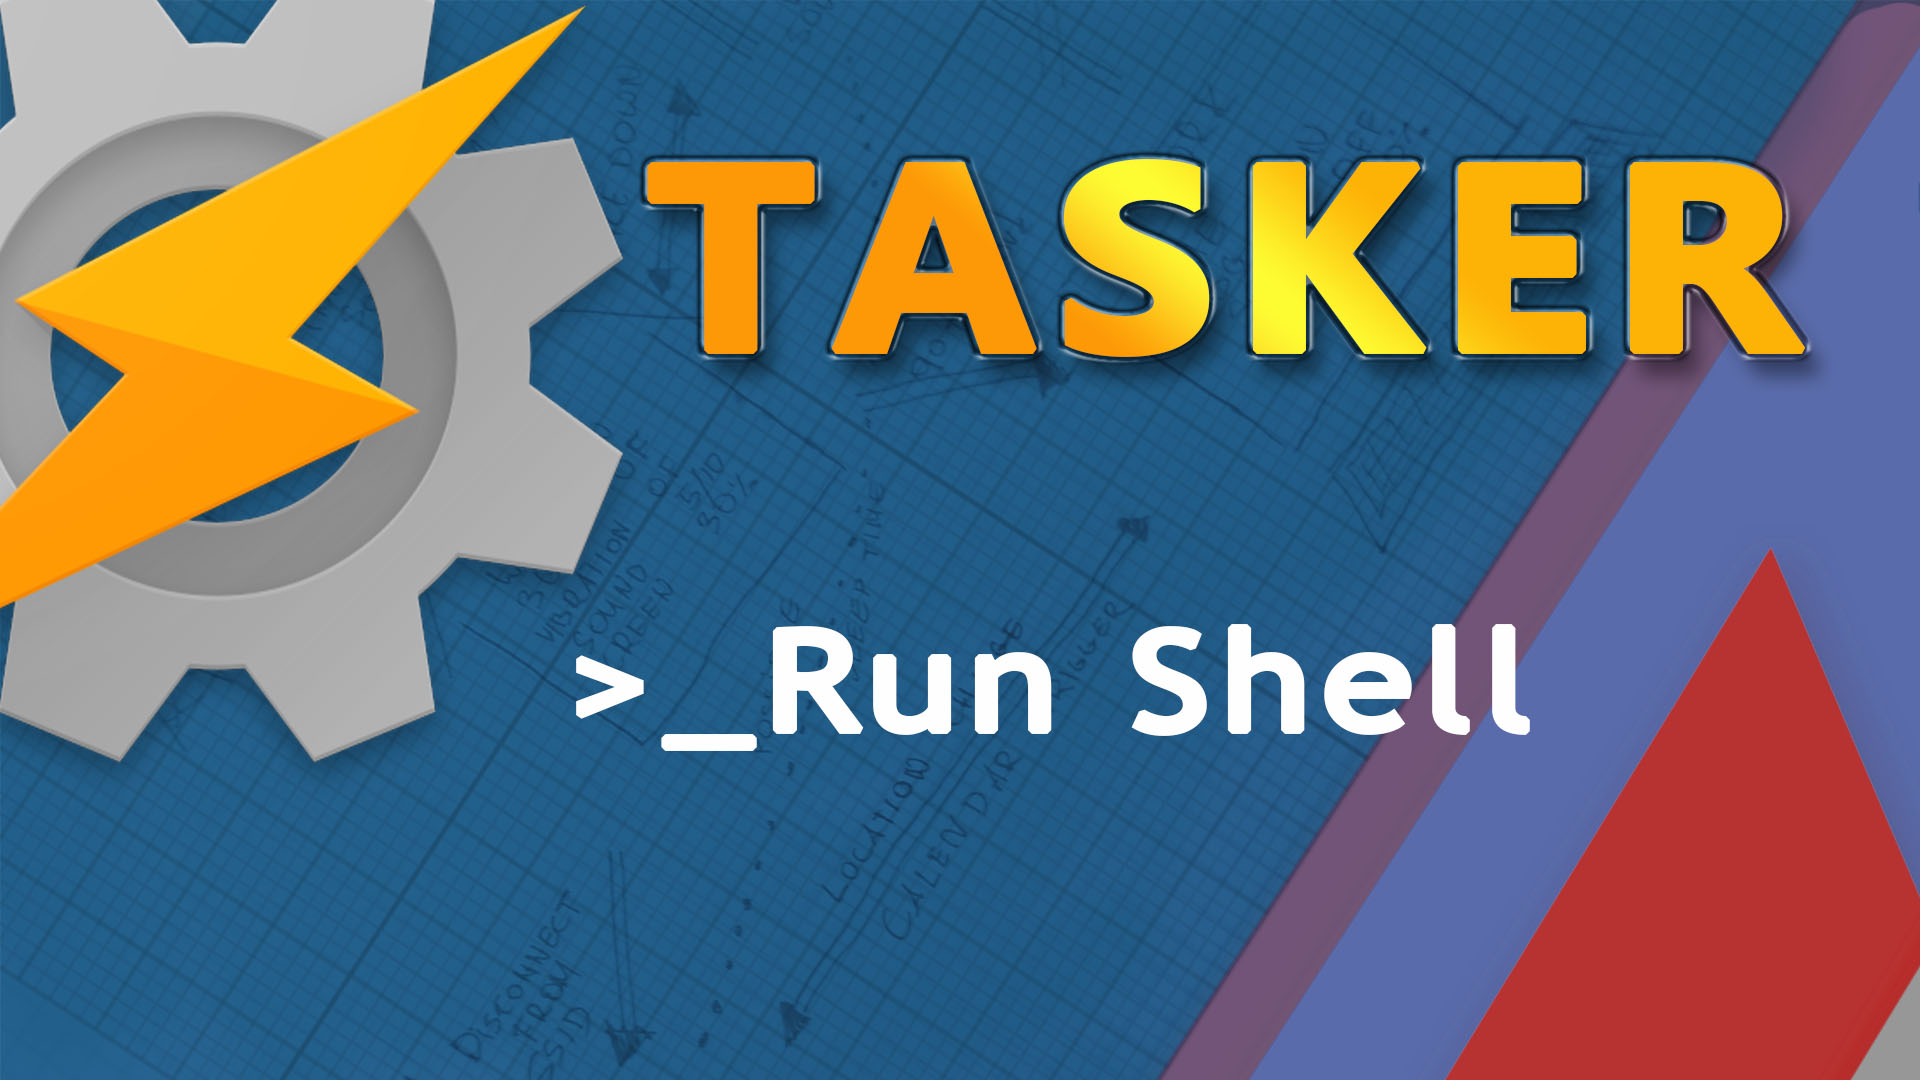 tasker run shell commands